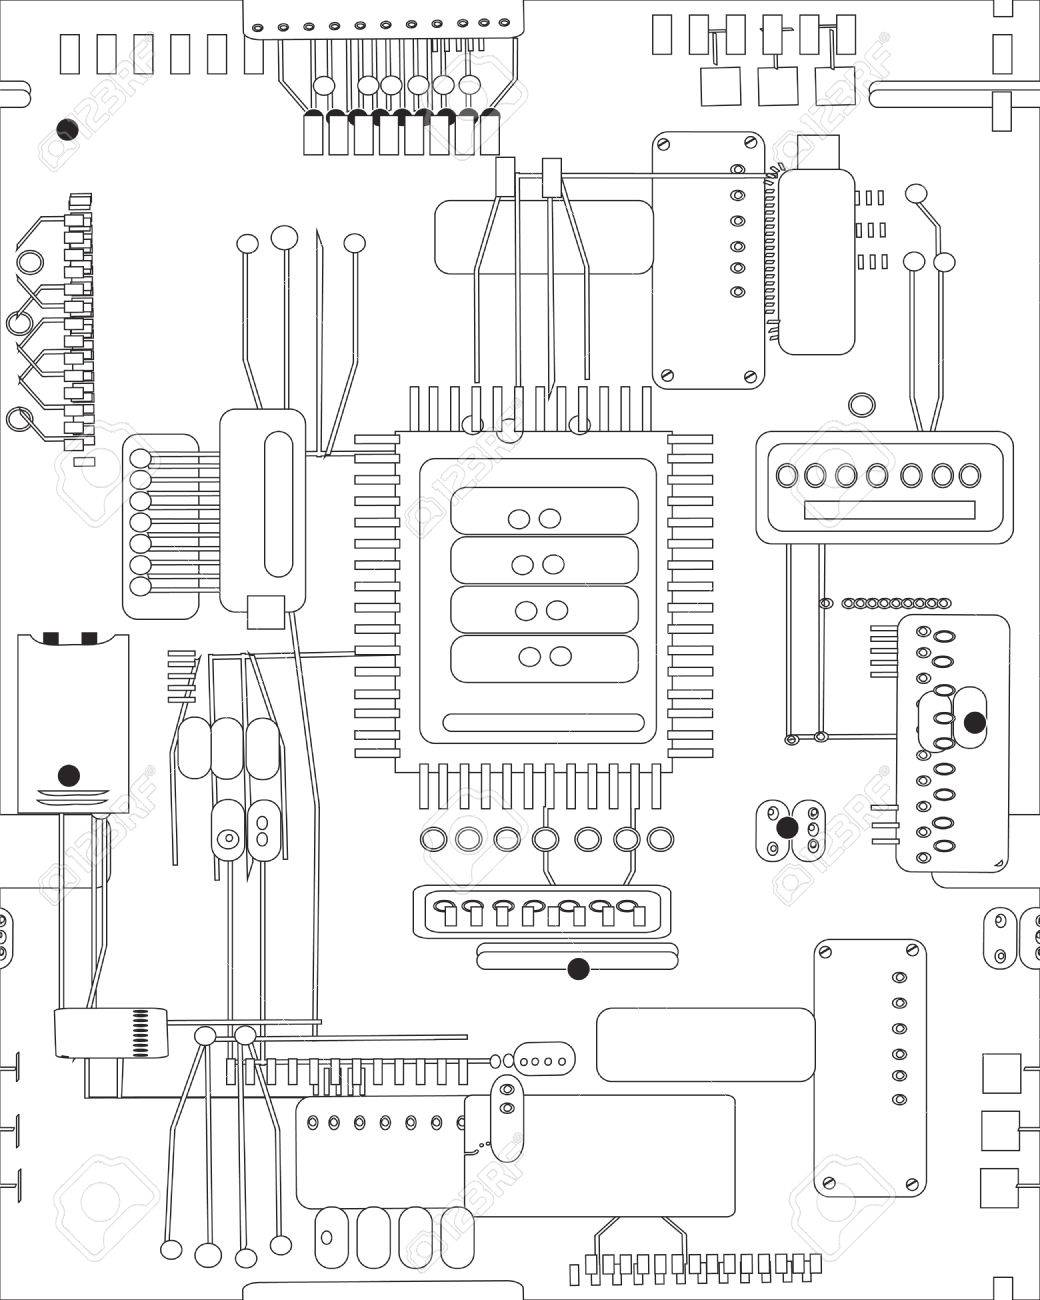 hight resolution of  beautiful spa circuit board wiring diagram model electrical attractive spa circuit board wiring diagram picture collection